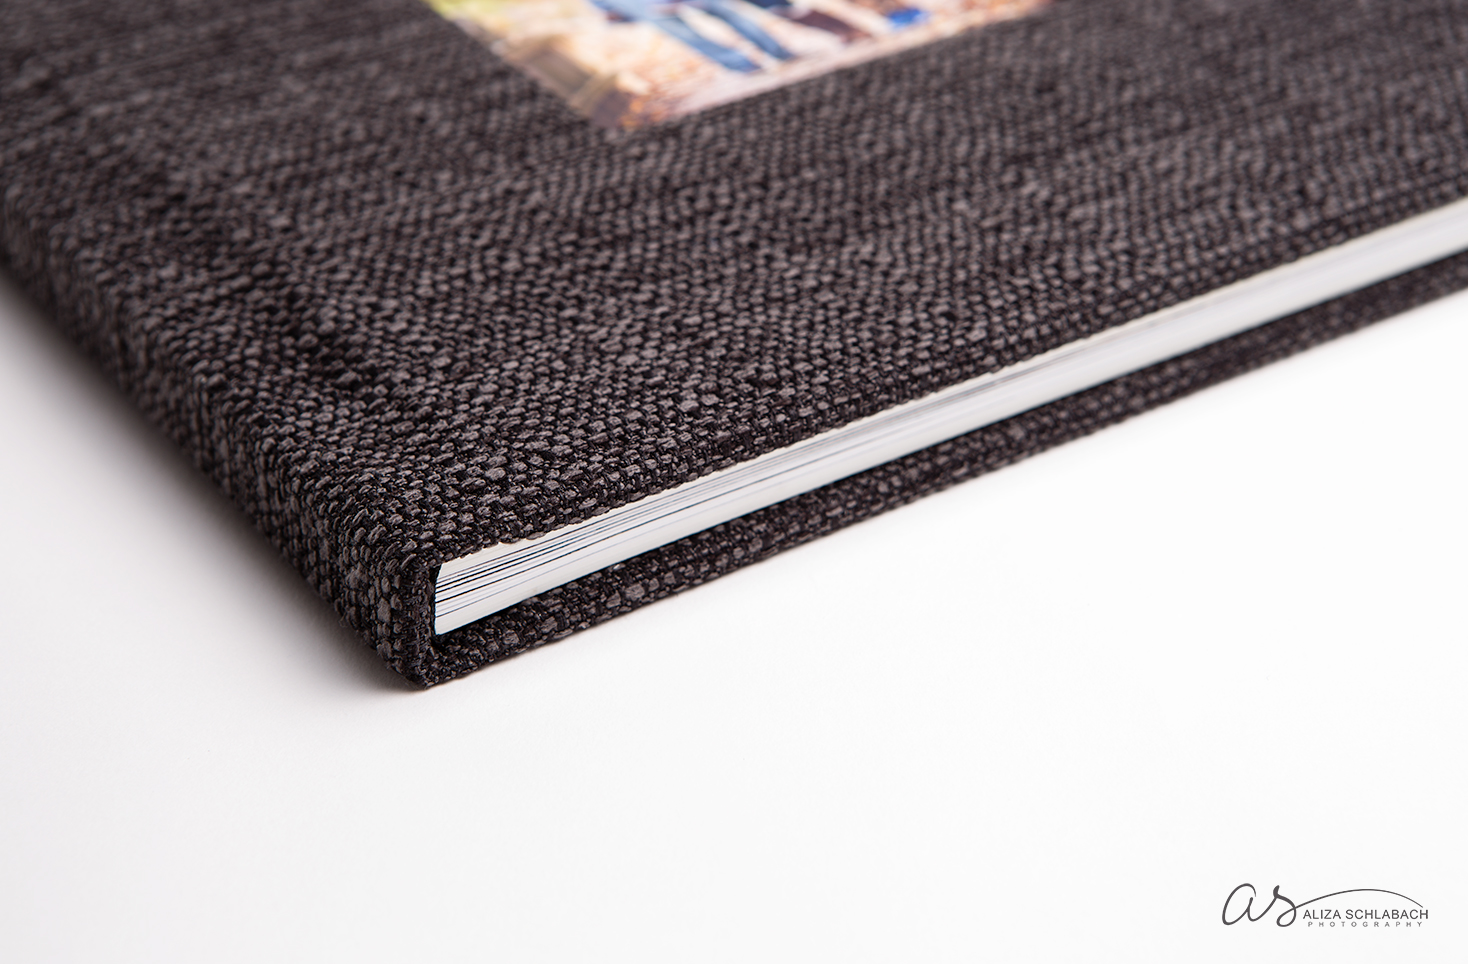 Photo of Lush Album. Notice the gorgeous highly textured fabric.